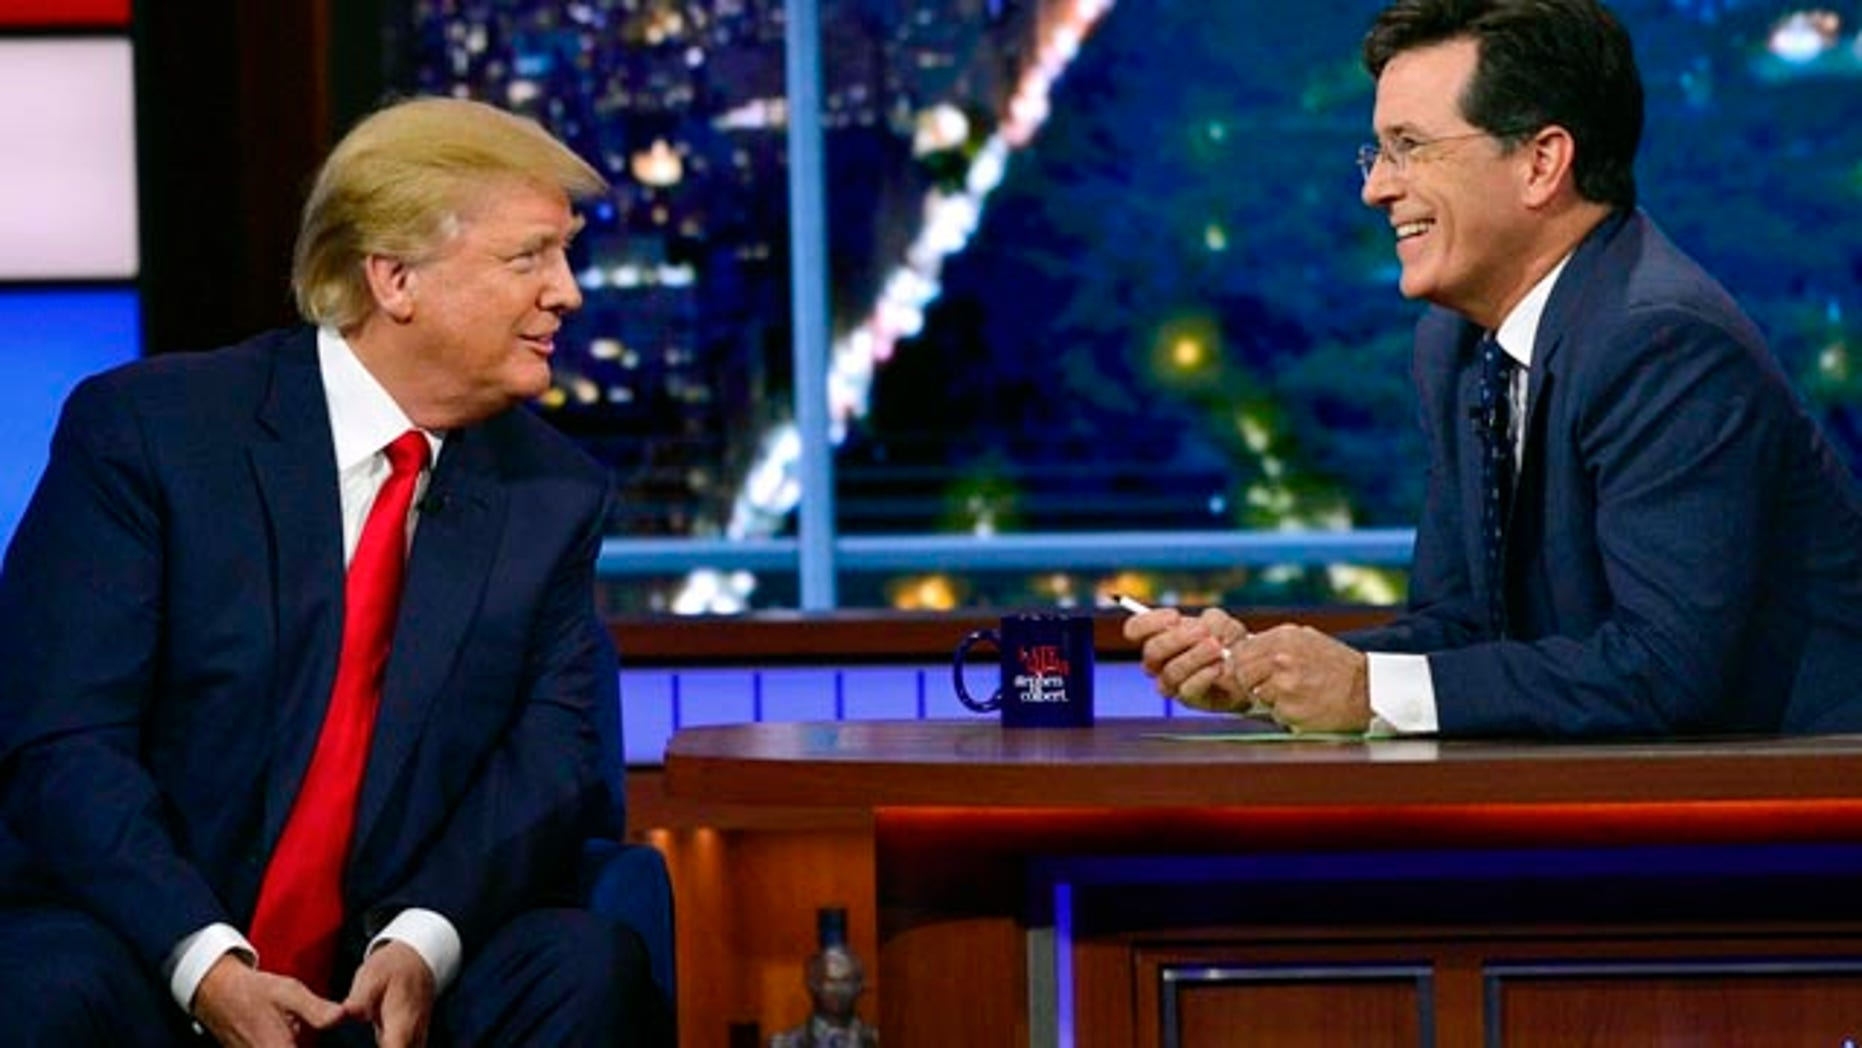 Sept. 22, 2015: In this photo provided by CBS, Republican presidential candidate Donald Trump, left, joins host Stephen Colbert on the set of 'The Late Show with Stephen Colbert' in New York. (John Paul Filo/CBS via AP)